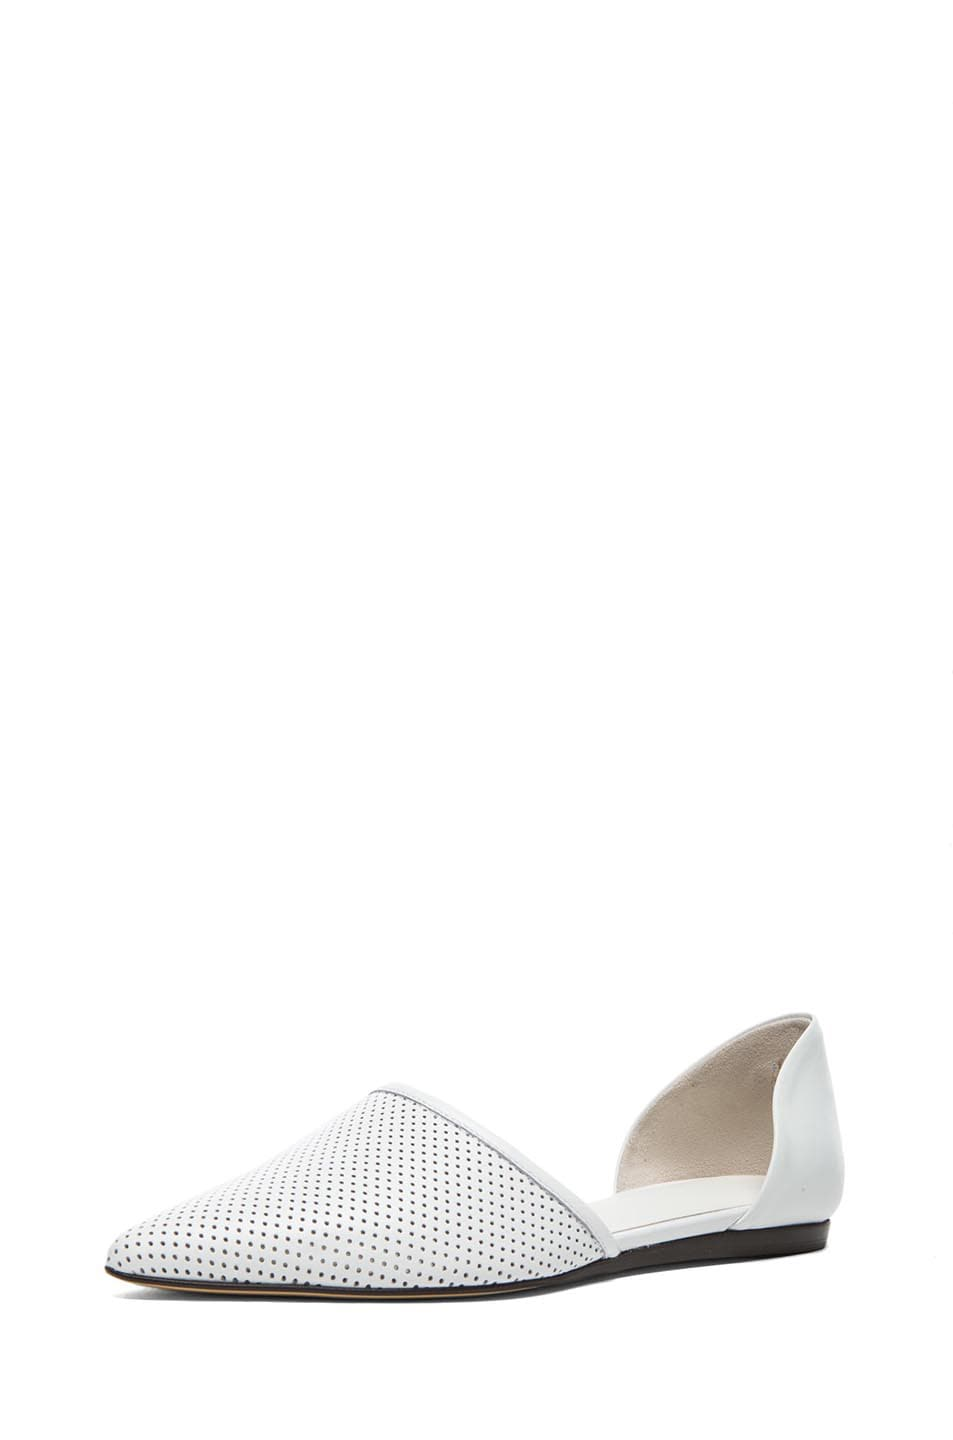 Image 2 of Jenni Kayne Perforated Leather Flats in White